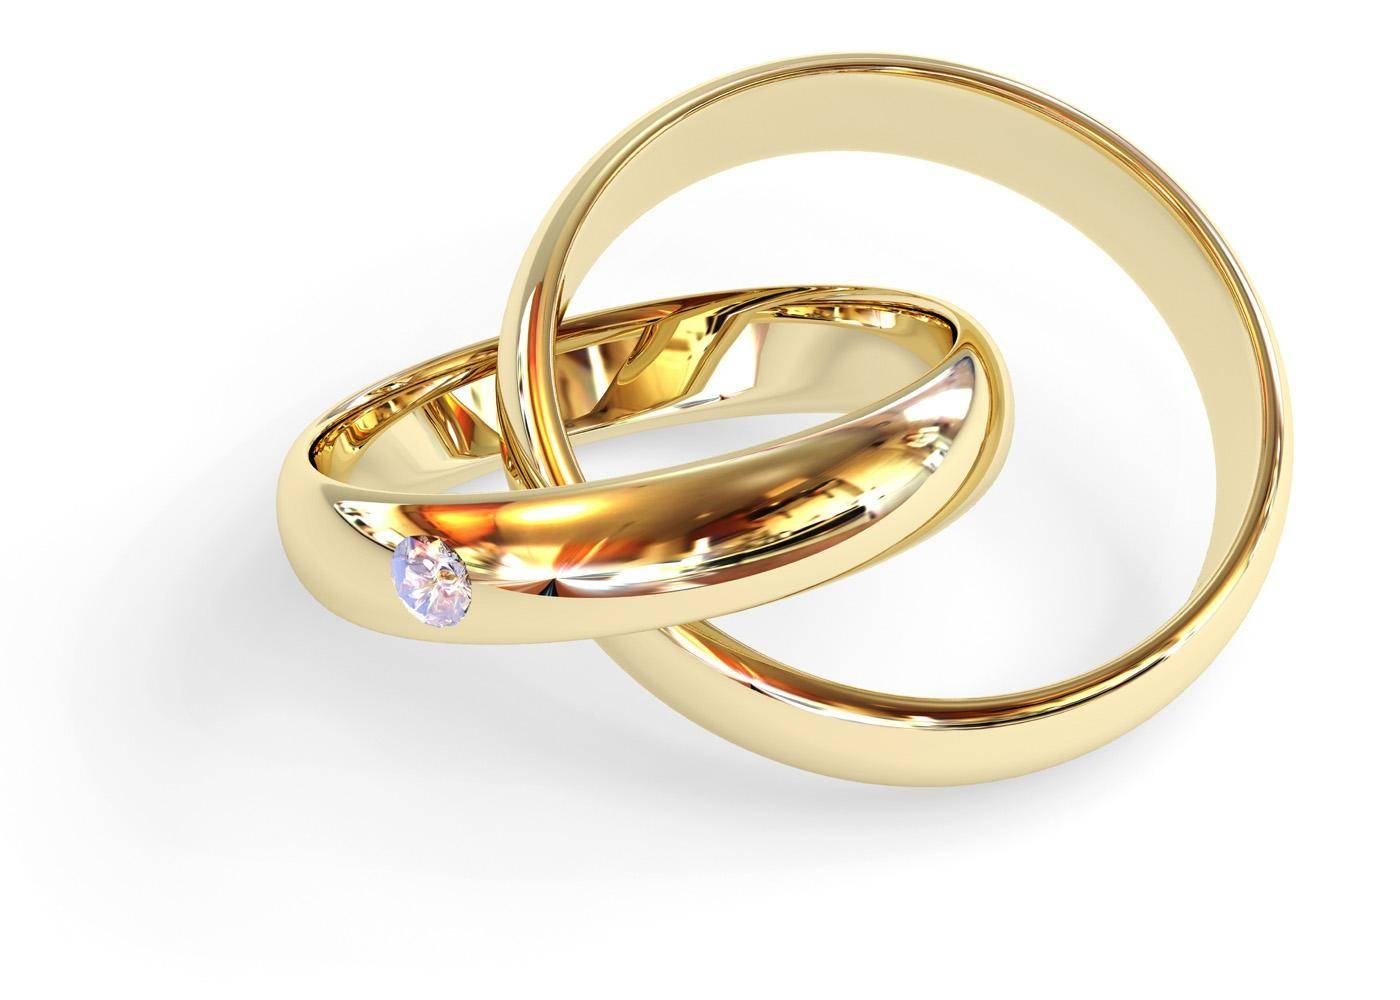 Engagement Rings For Couples In Gold 4 – Ifec Ci Throughout Engagement Rings For Couples In Gold (View 6 of 15)